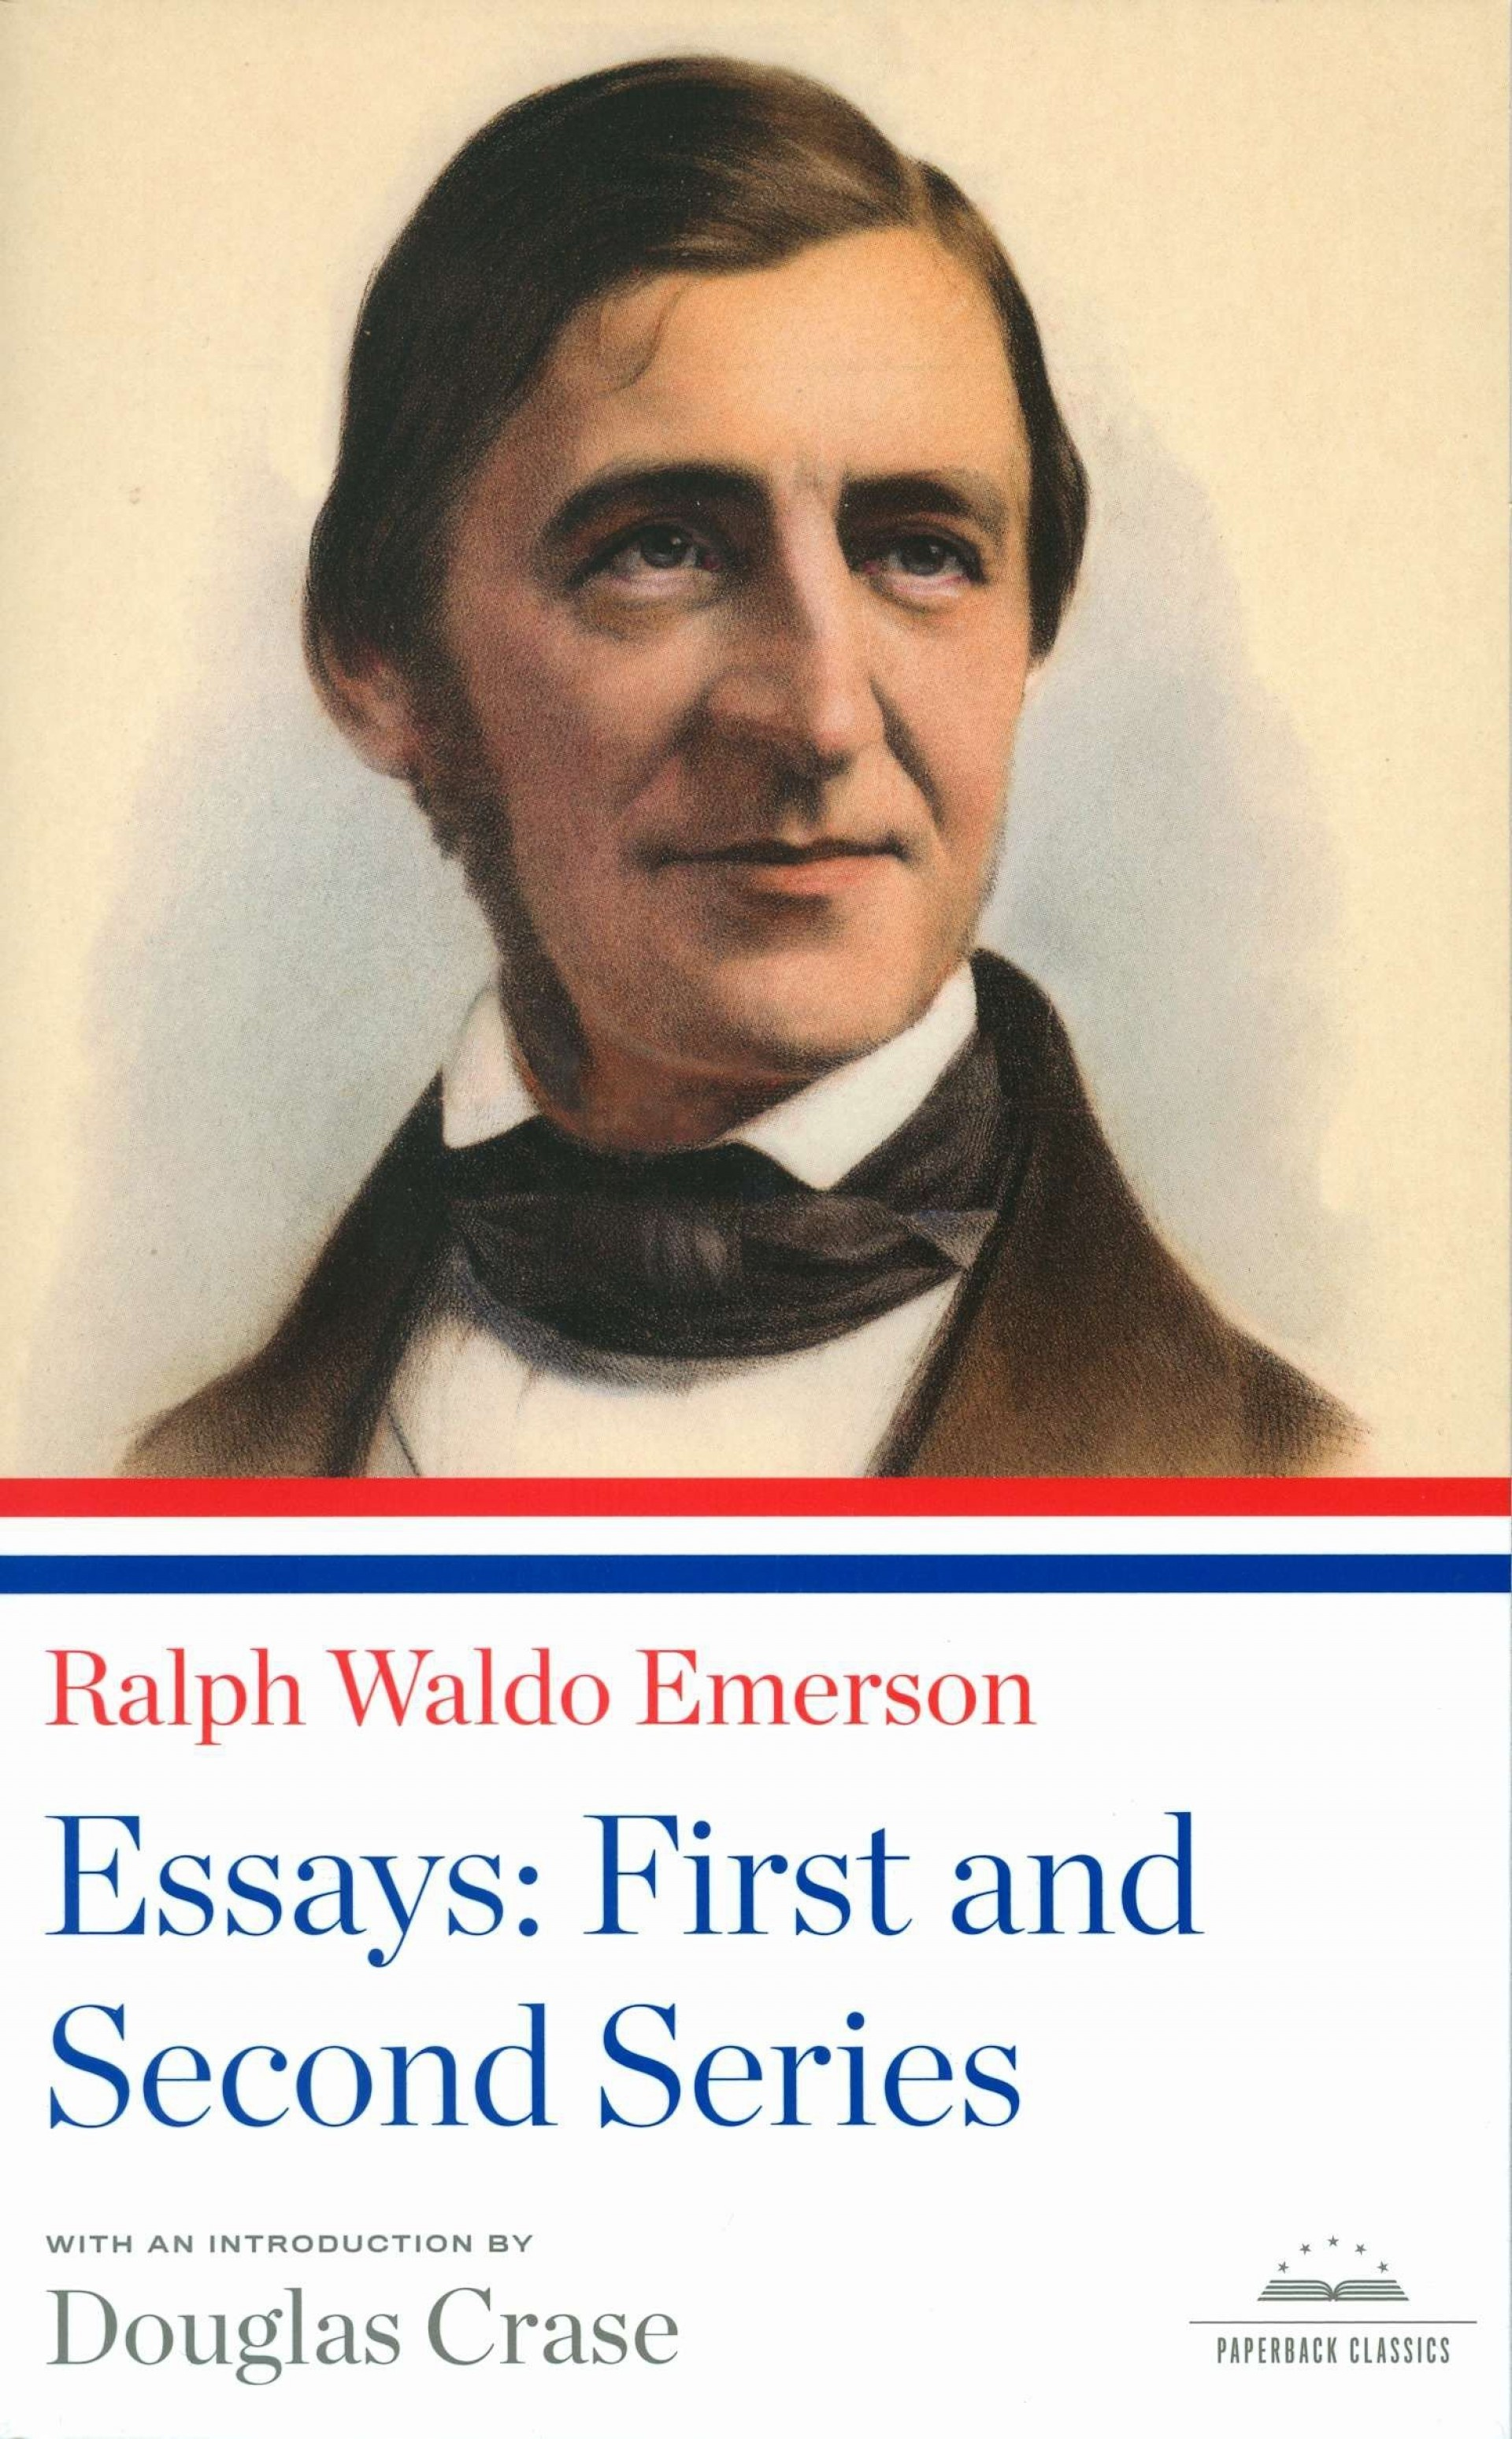 013 81bbtjzup6l Essay Example Ralph Waldo Emerson Unusual Essays Nature And Selected By Pdf Download First Second Series 1920